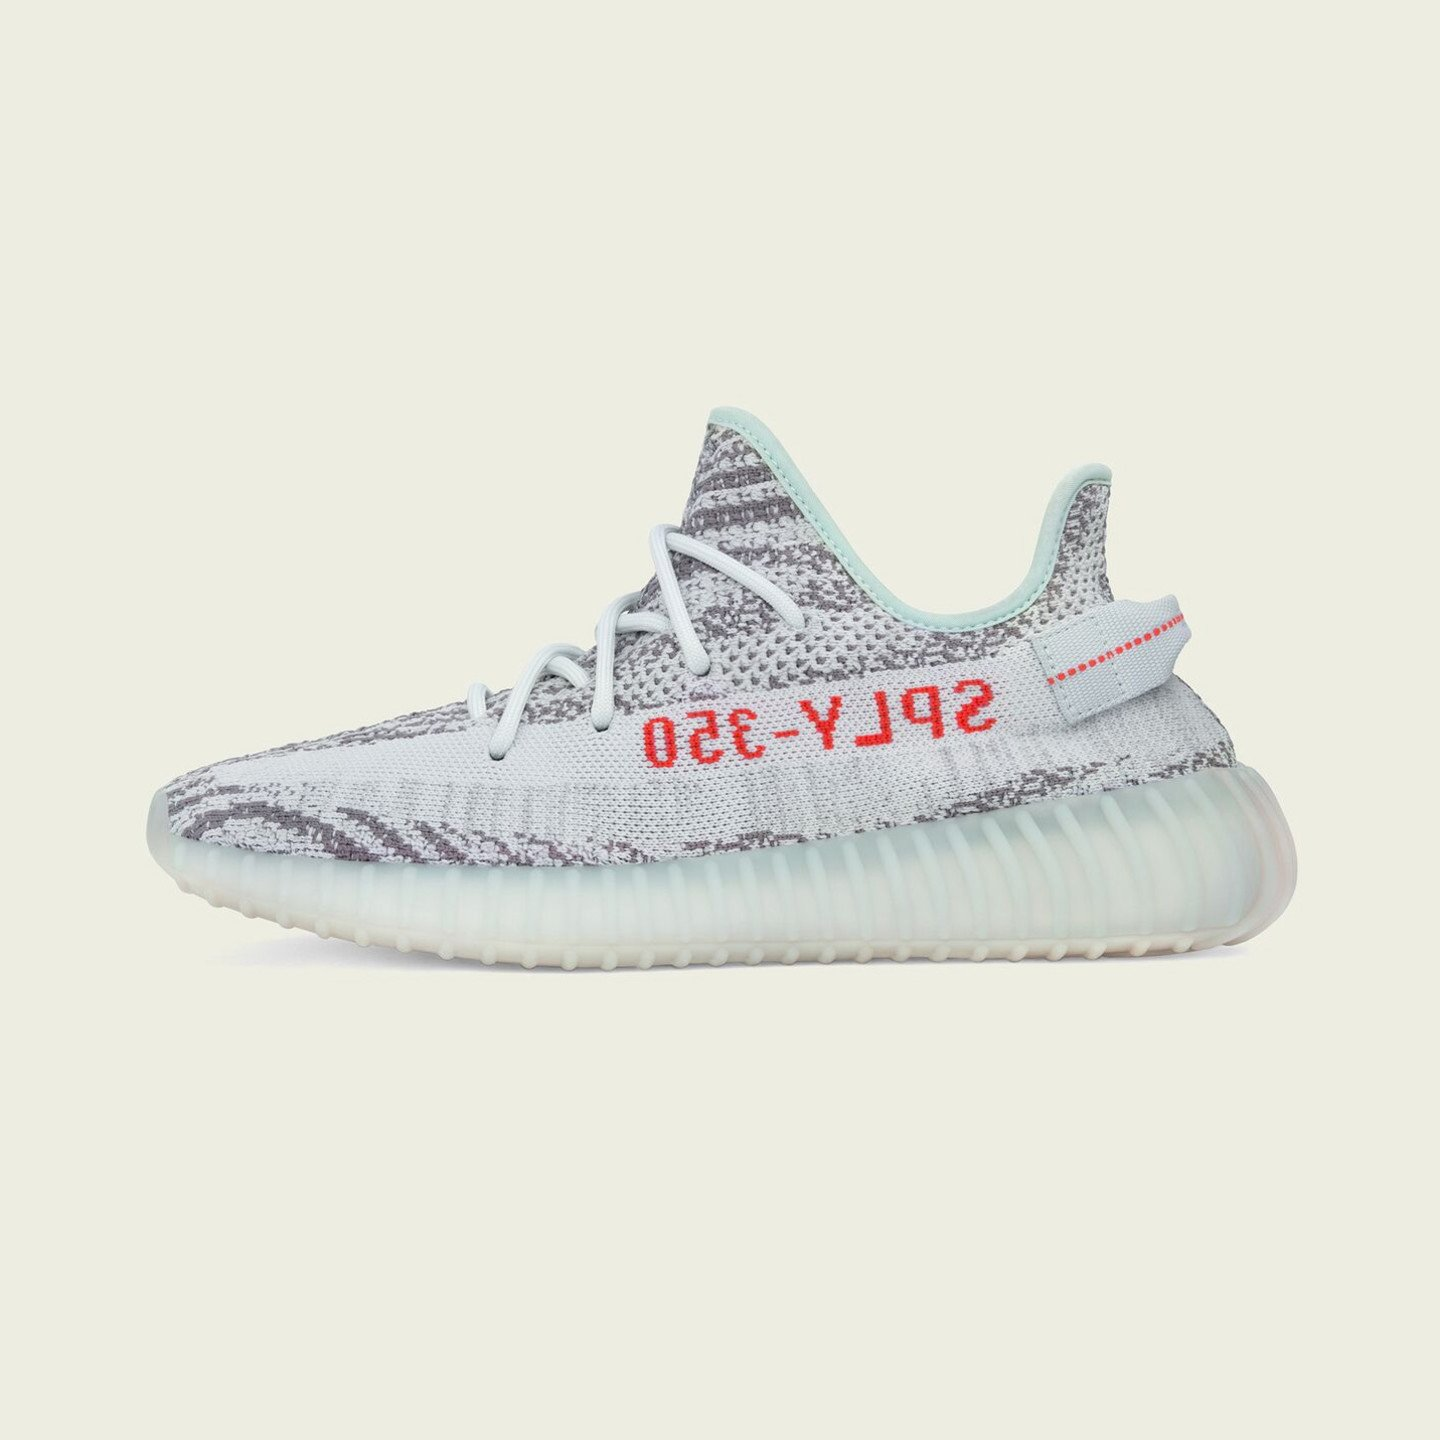 Adidas Yeezy Boost 350 V2 'Blue Tint' Blue Tint/Grey Three/High Resolution Red B37571